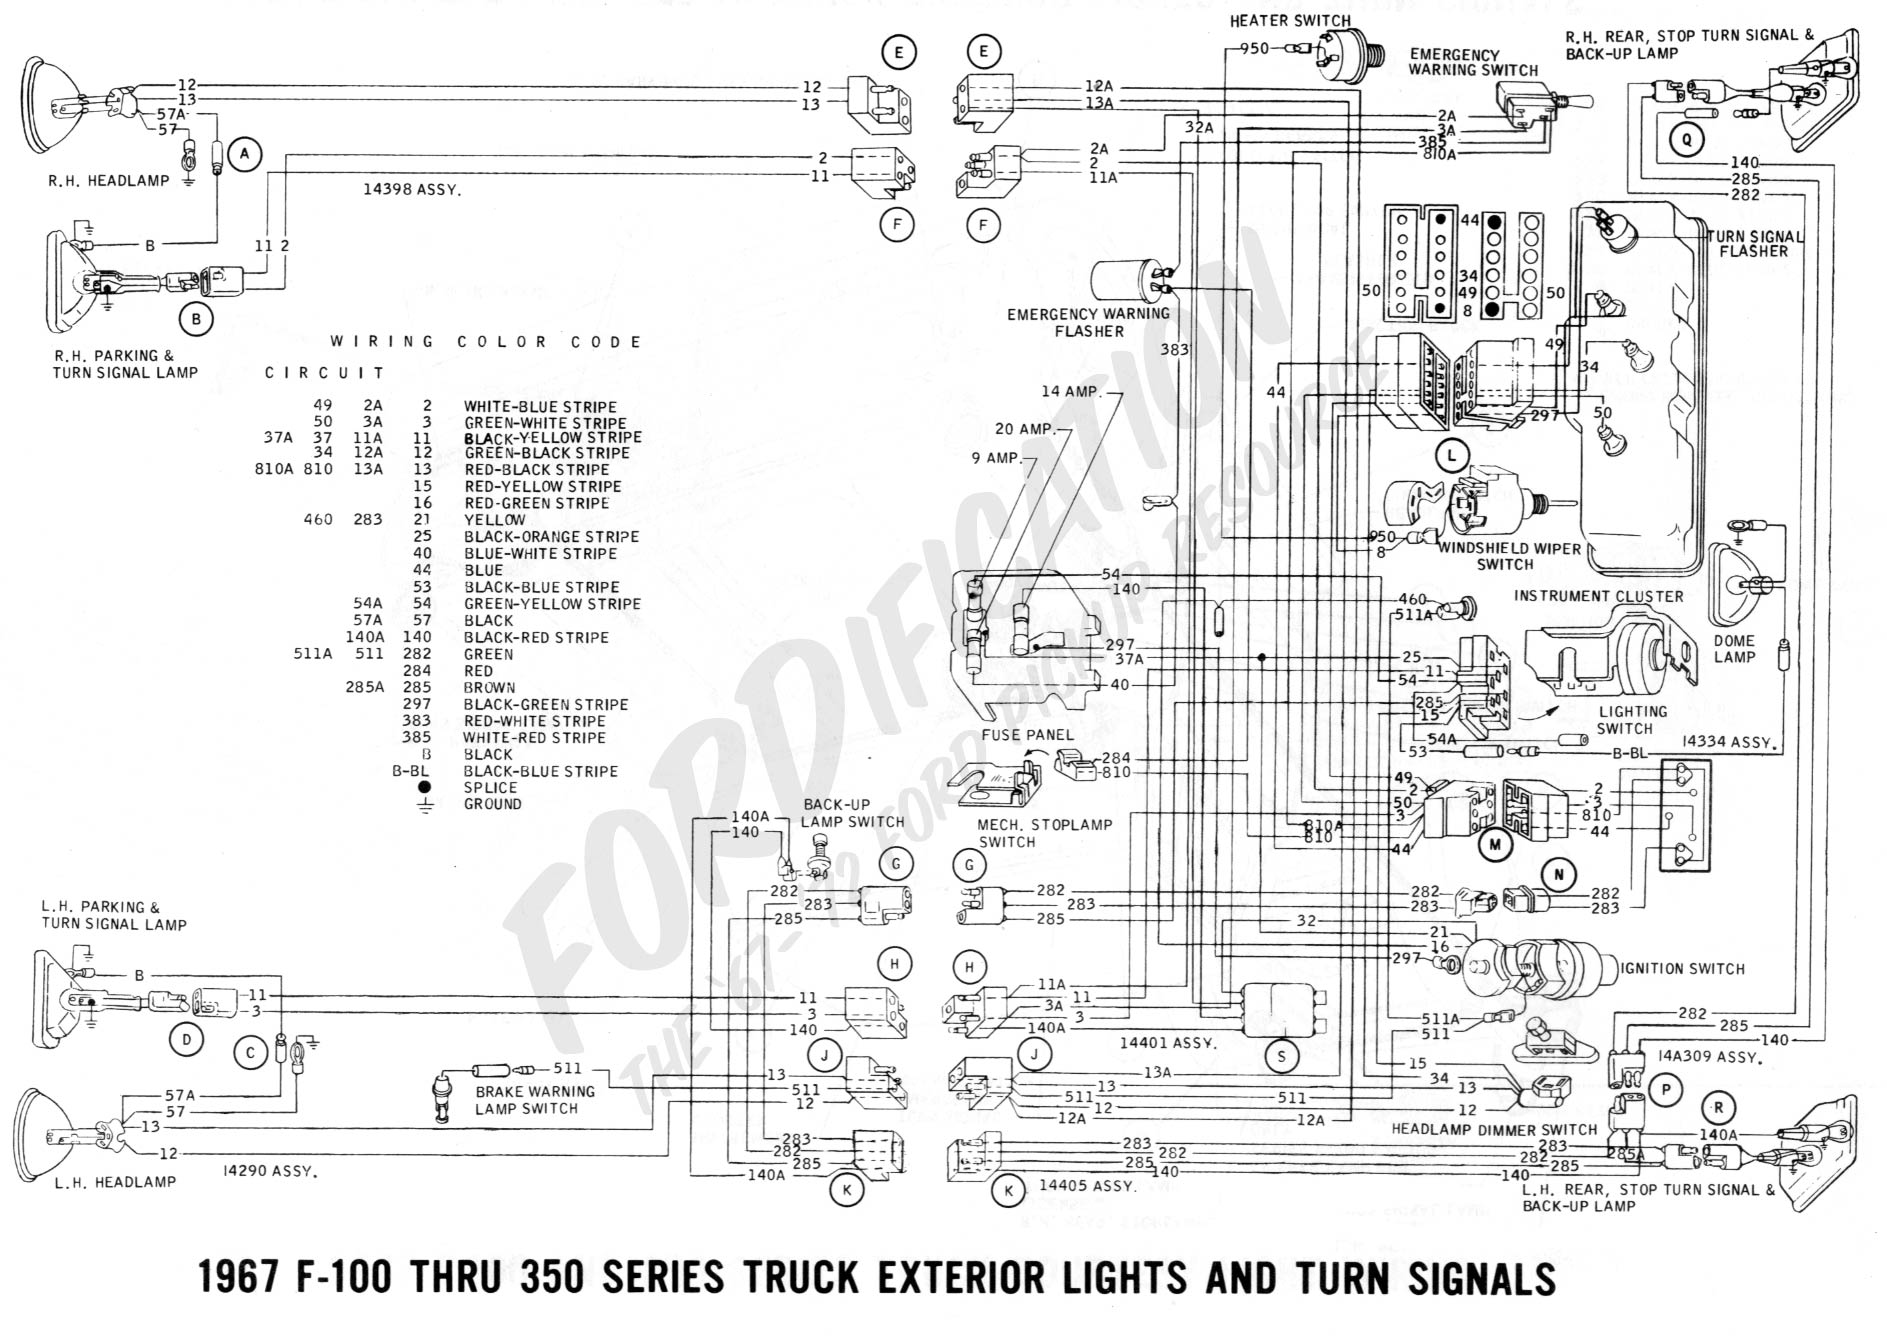 Ford F 250 Turn Signal Wiring Diagram Data Wiring Schema 1968 Mustang  Starter Solenoid Location 66 Mustang Turn Signal Wiring Diagram